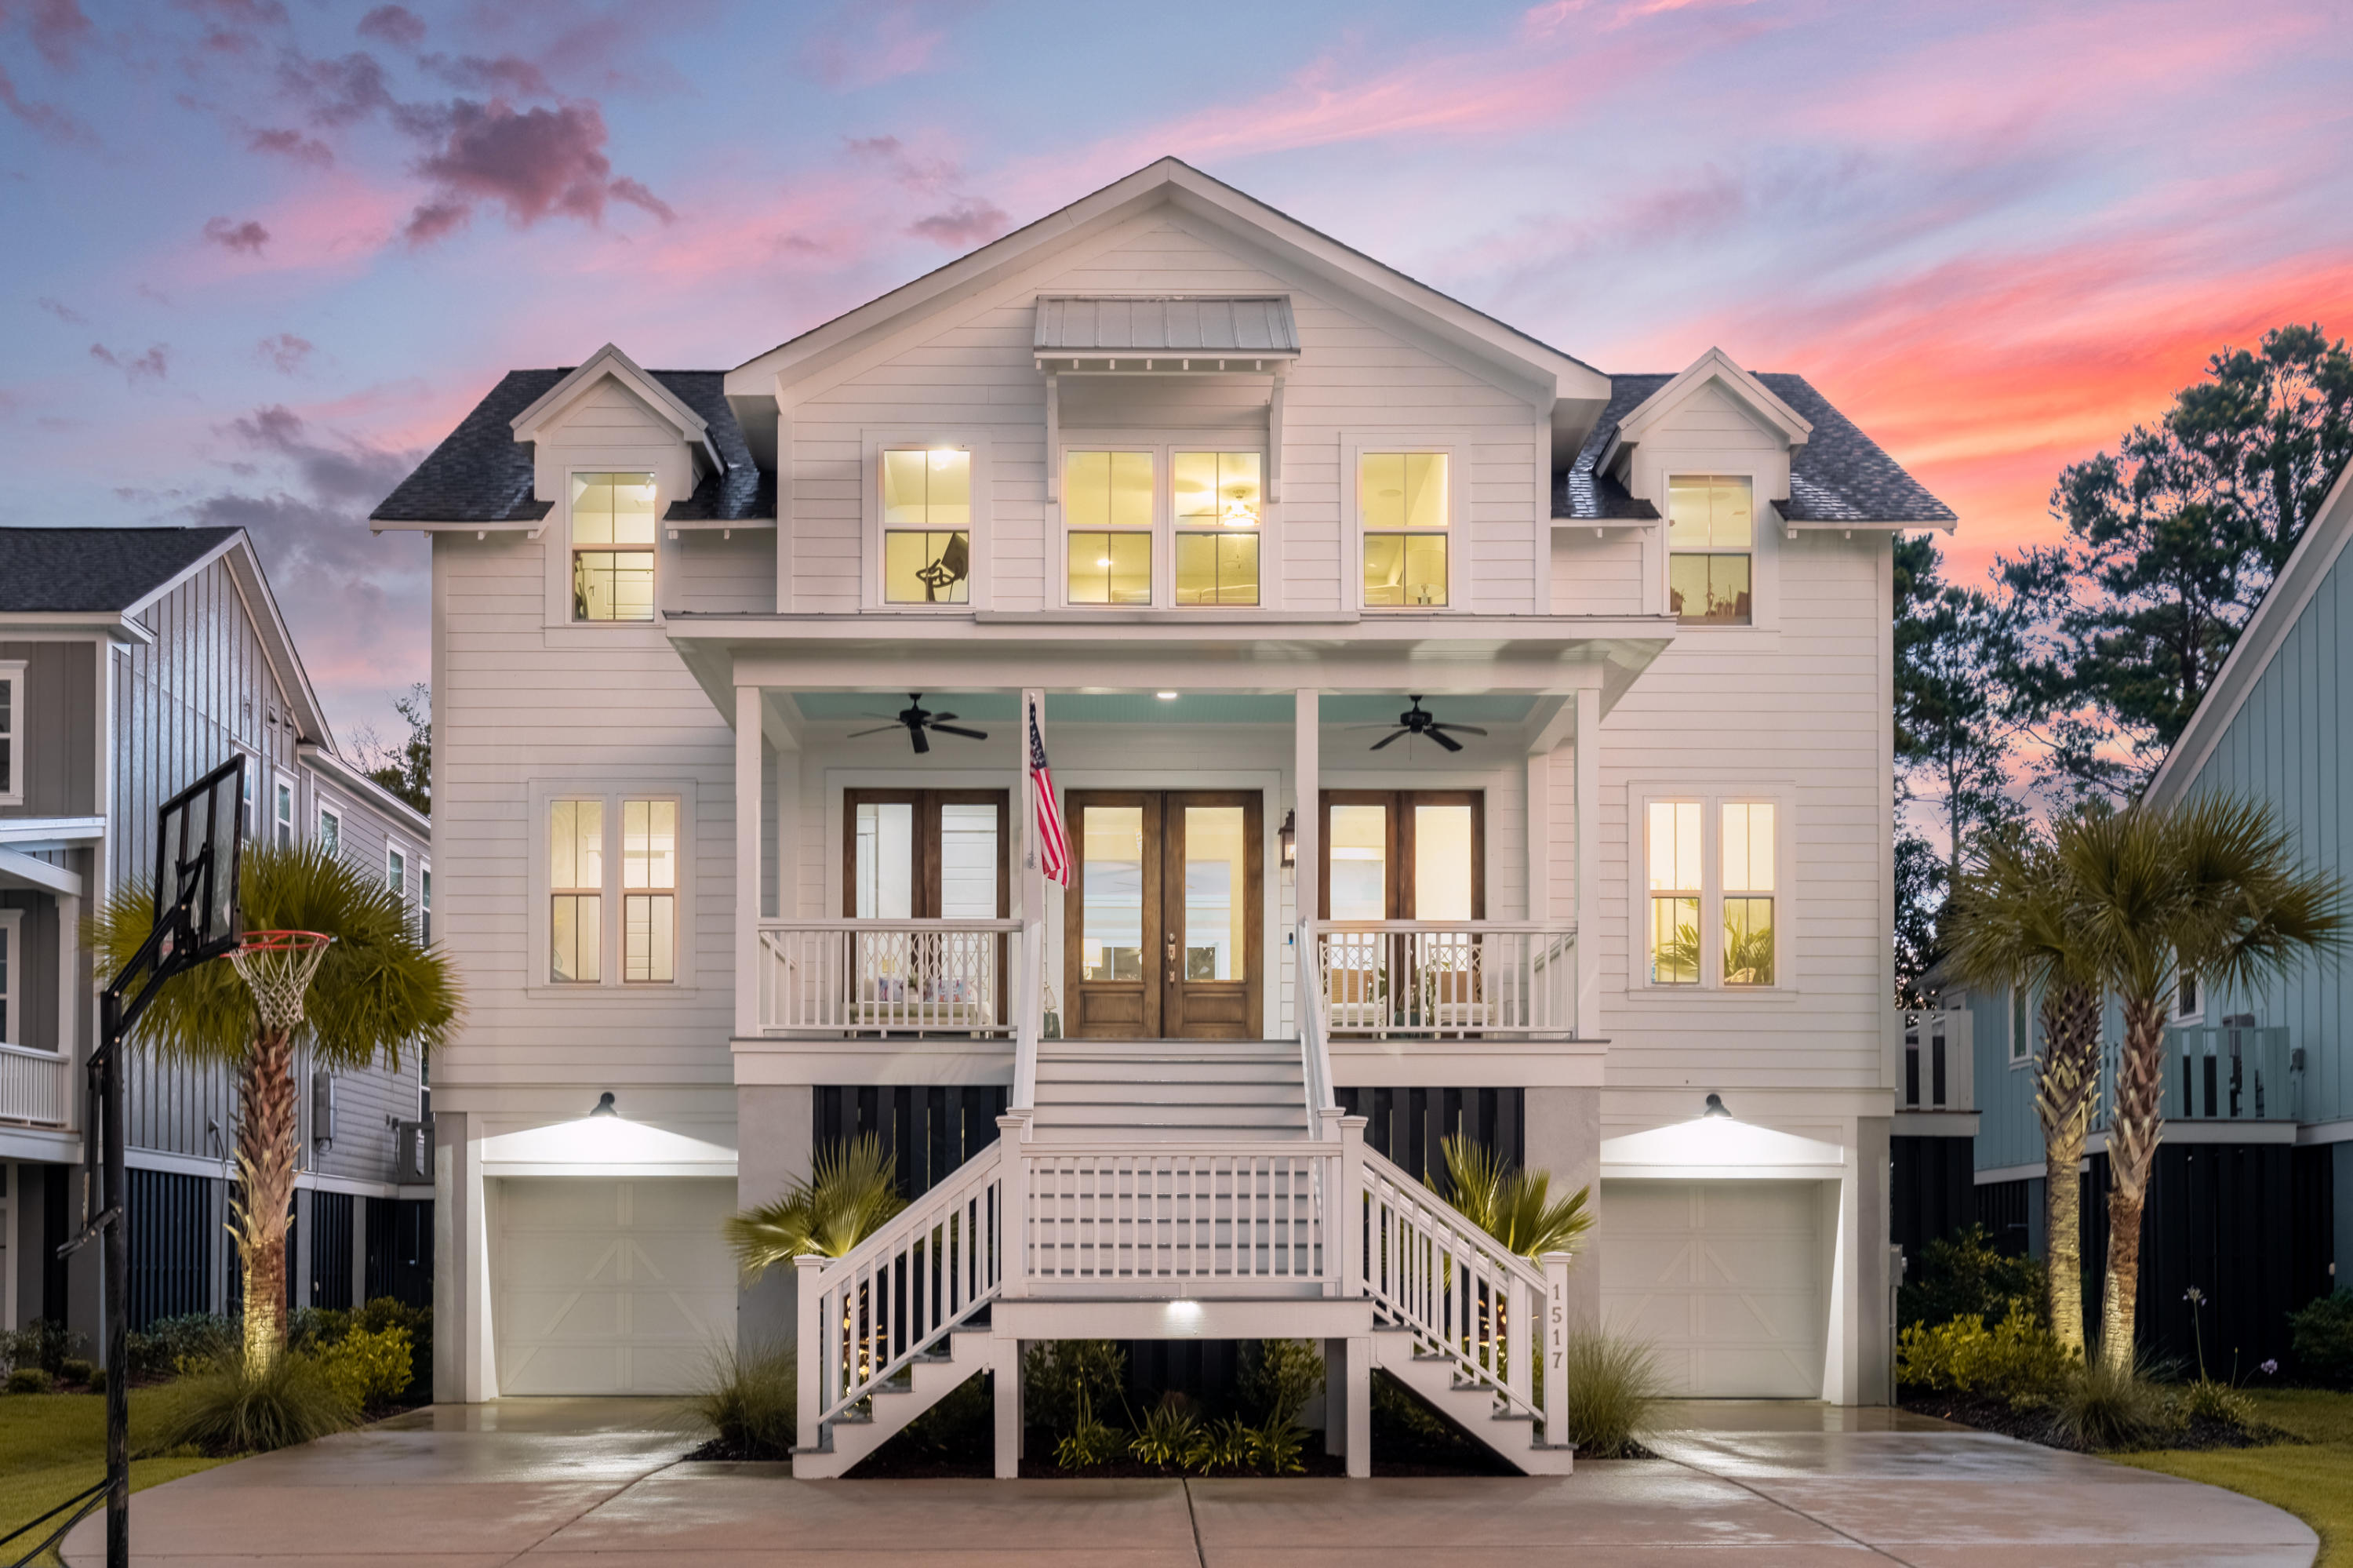 Stratton by the Sound Homes For Sale - 1517 Menhaden, Mount Pleasant, SC - 0